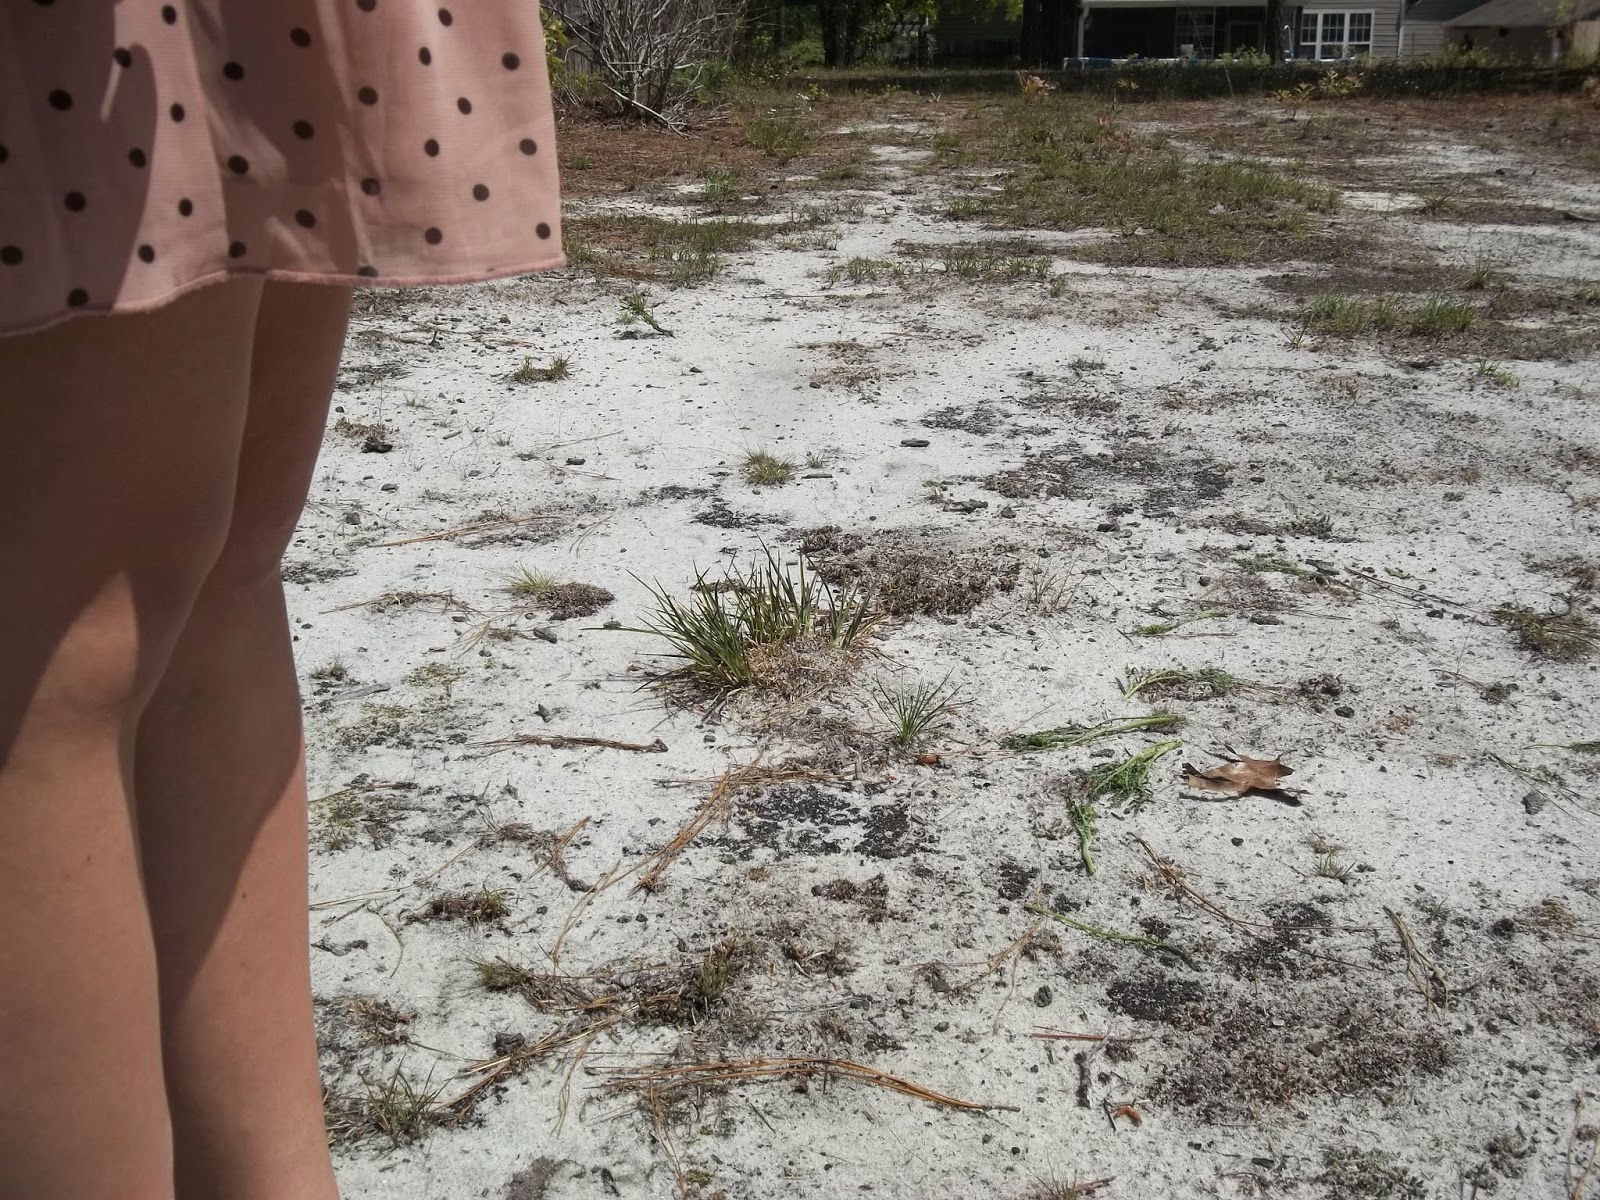 Blush and Chocolate Brown + A Surprise! Blush and chocolate brown polka dot dress, gold jewelry, white sandals. http://mybowsandclothes.blogspot.com/. #outfit #BowsandClothes #capsulewardrobe #surprise #blush